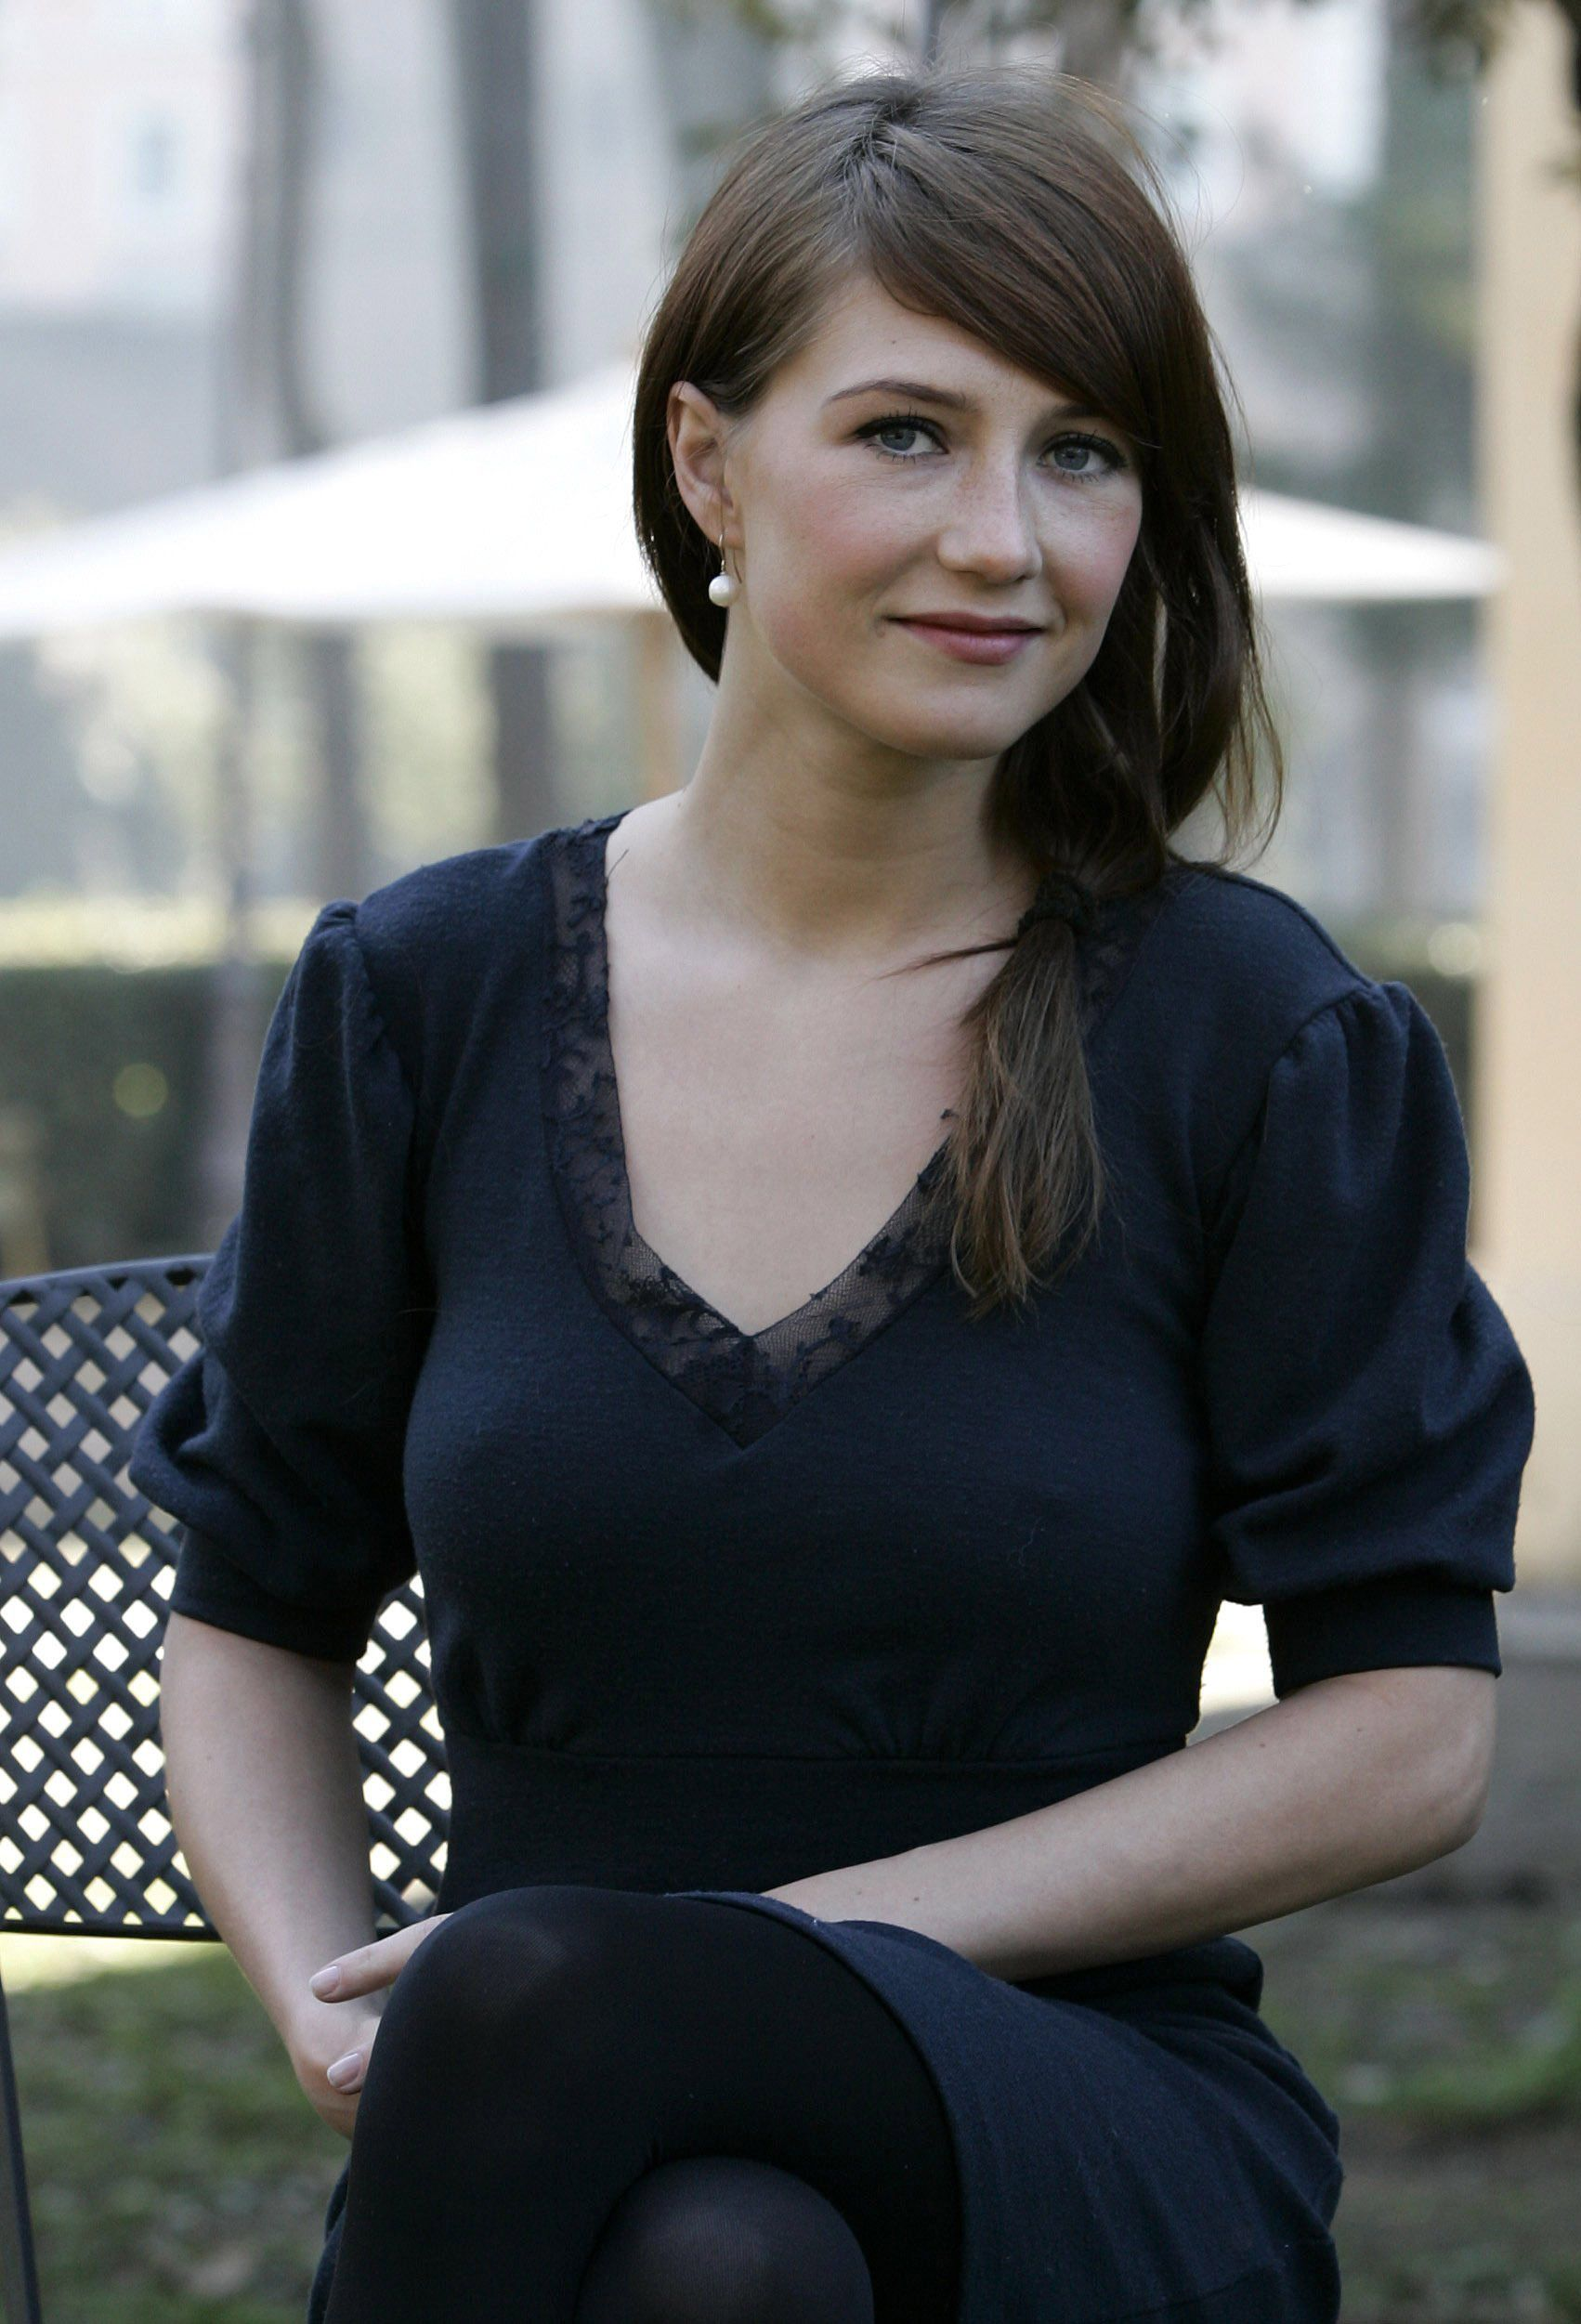 Celebrites Carice Van Houten nudes (41 photos), Pussy, Leaked, Boobs, bra 2006